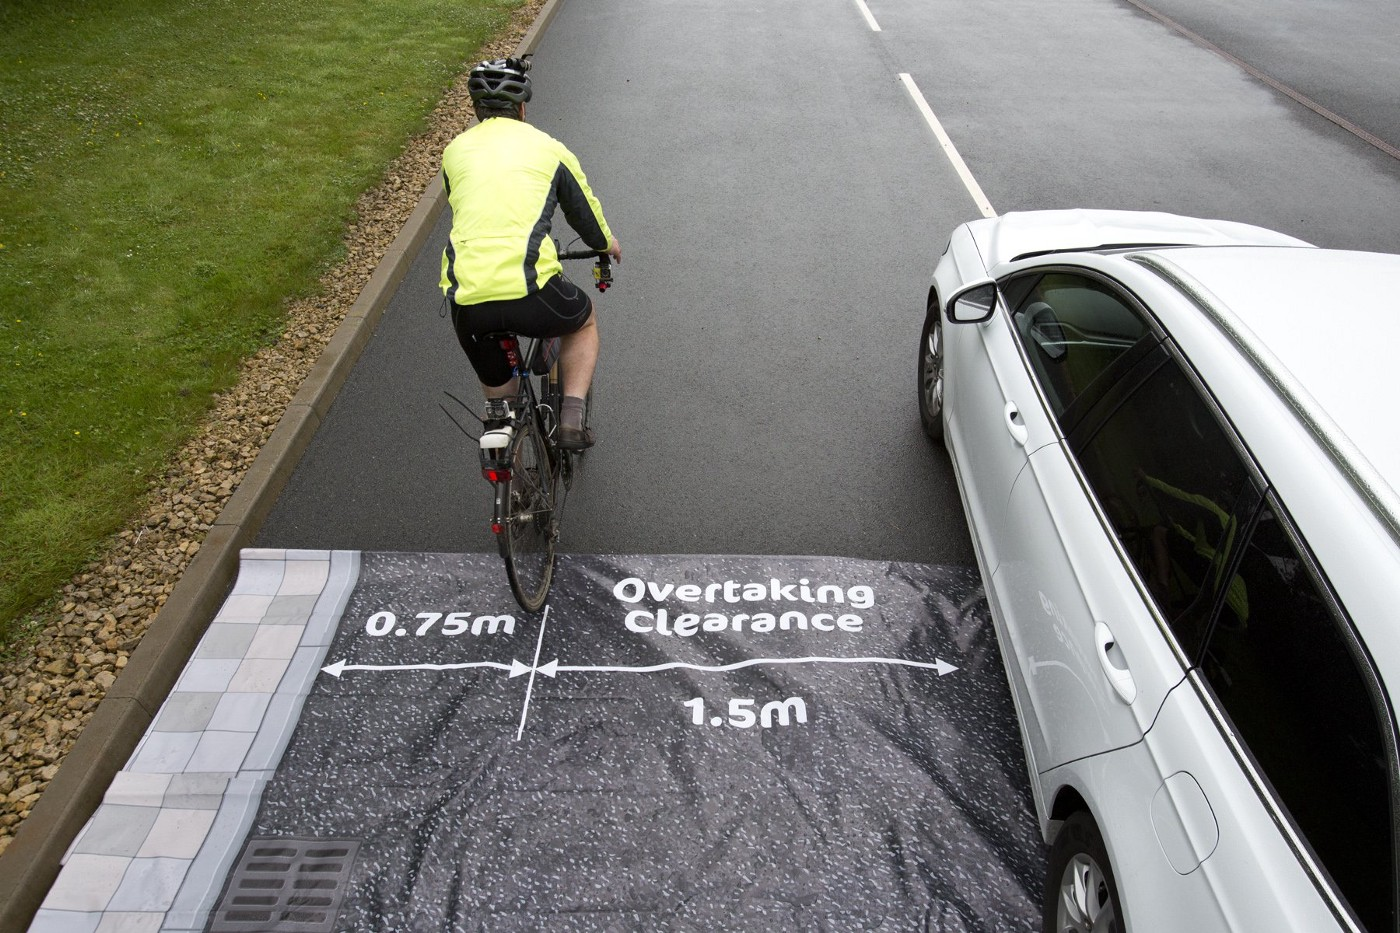 A cyclists being overtaken on a road with markings to show the safe distances for such a manouvre